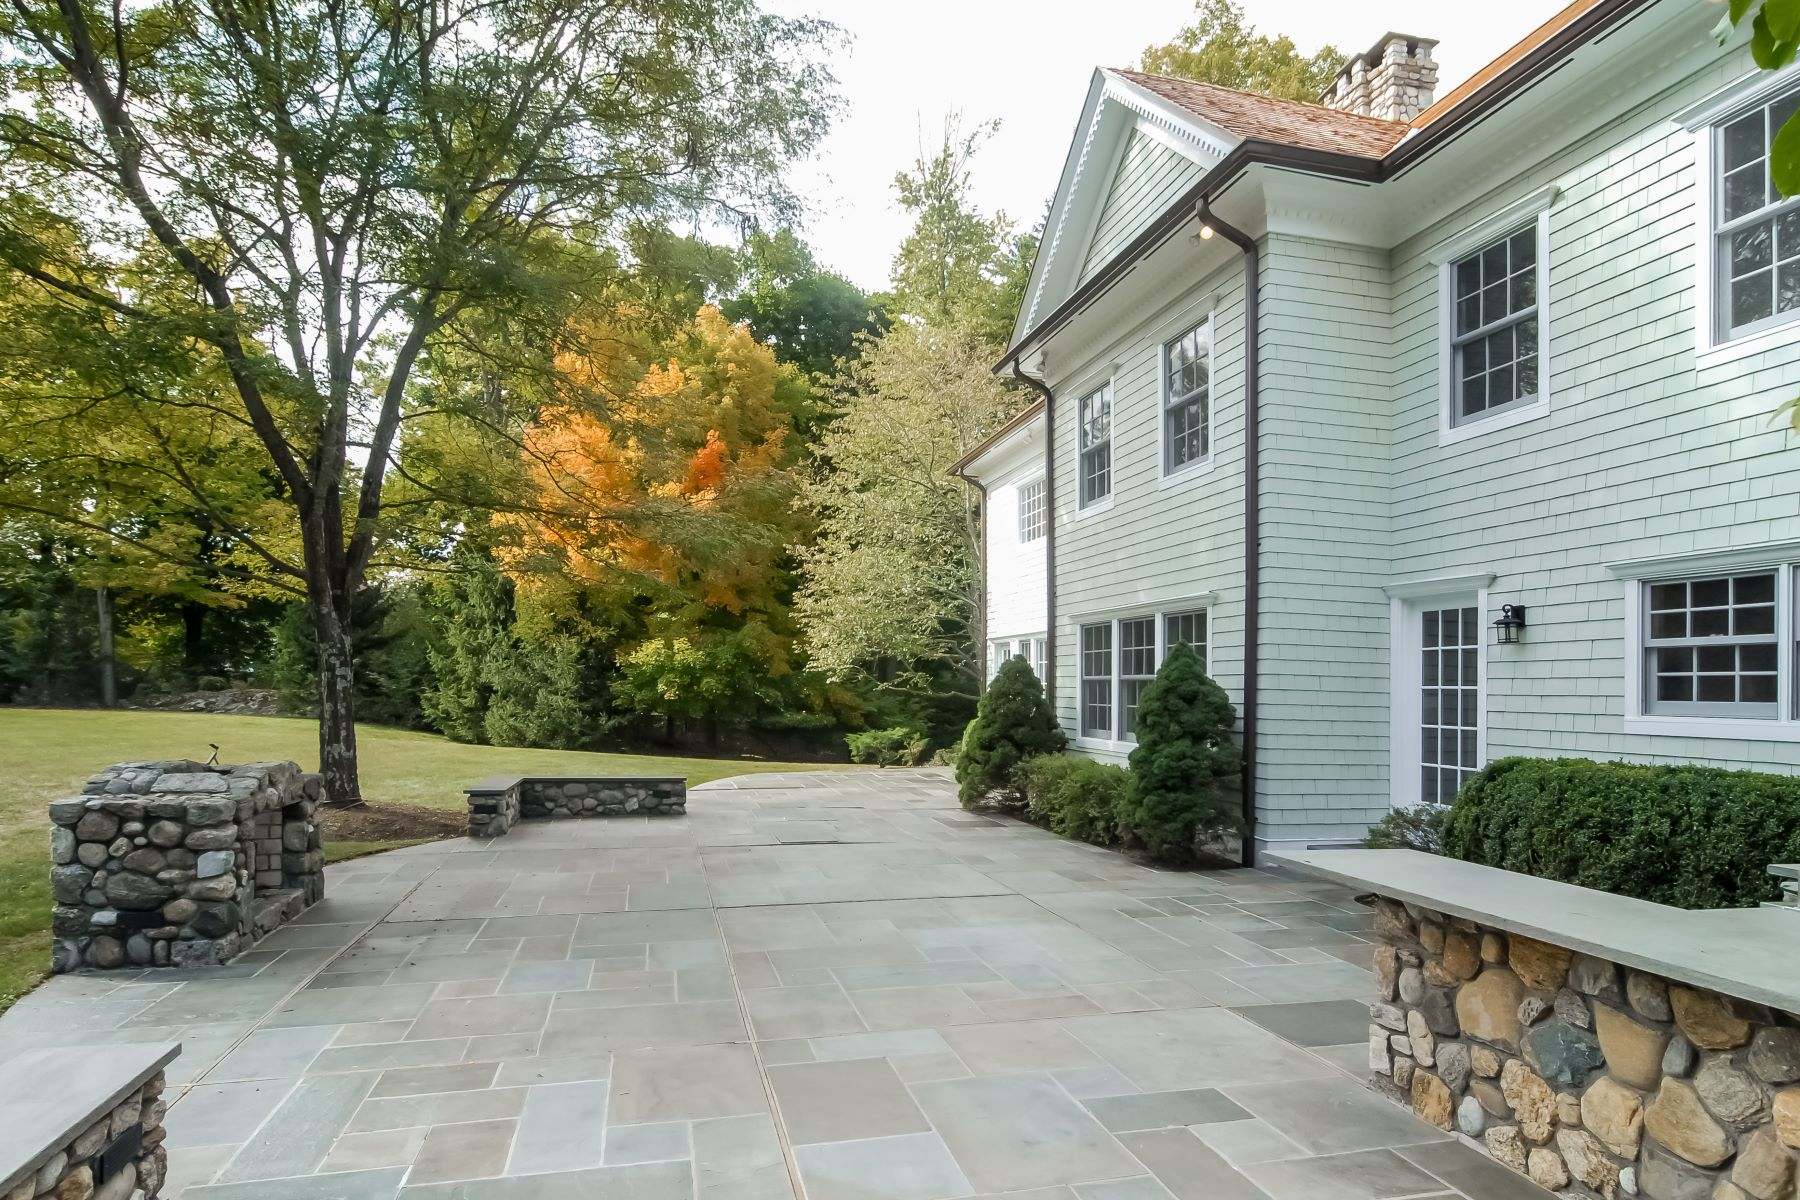 Additional photo for property listing at 12 Penwood Road 12 Penwood Road Bedford Corners, New York 10549 United States